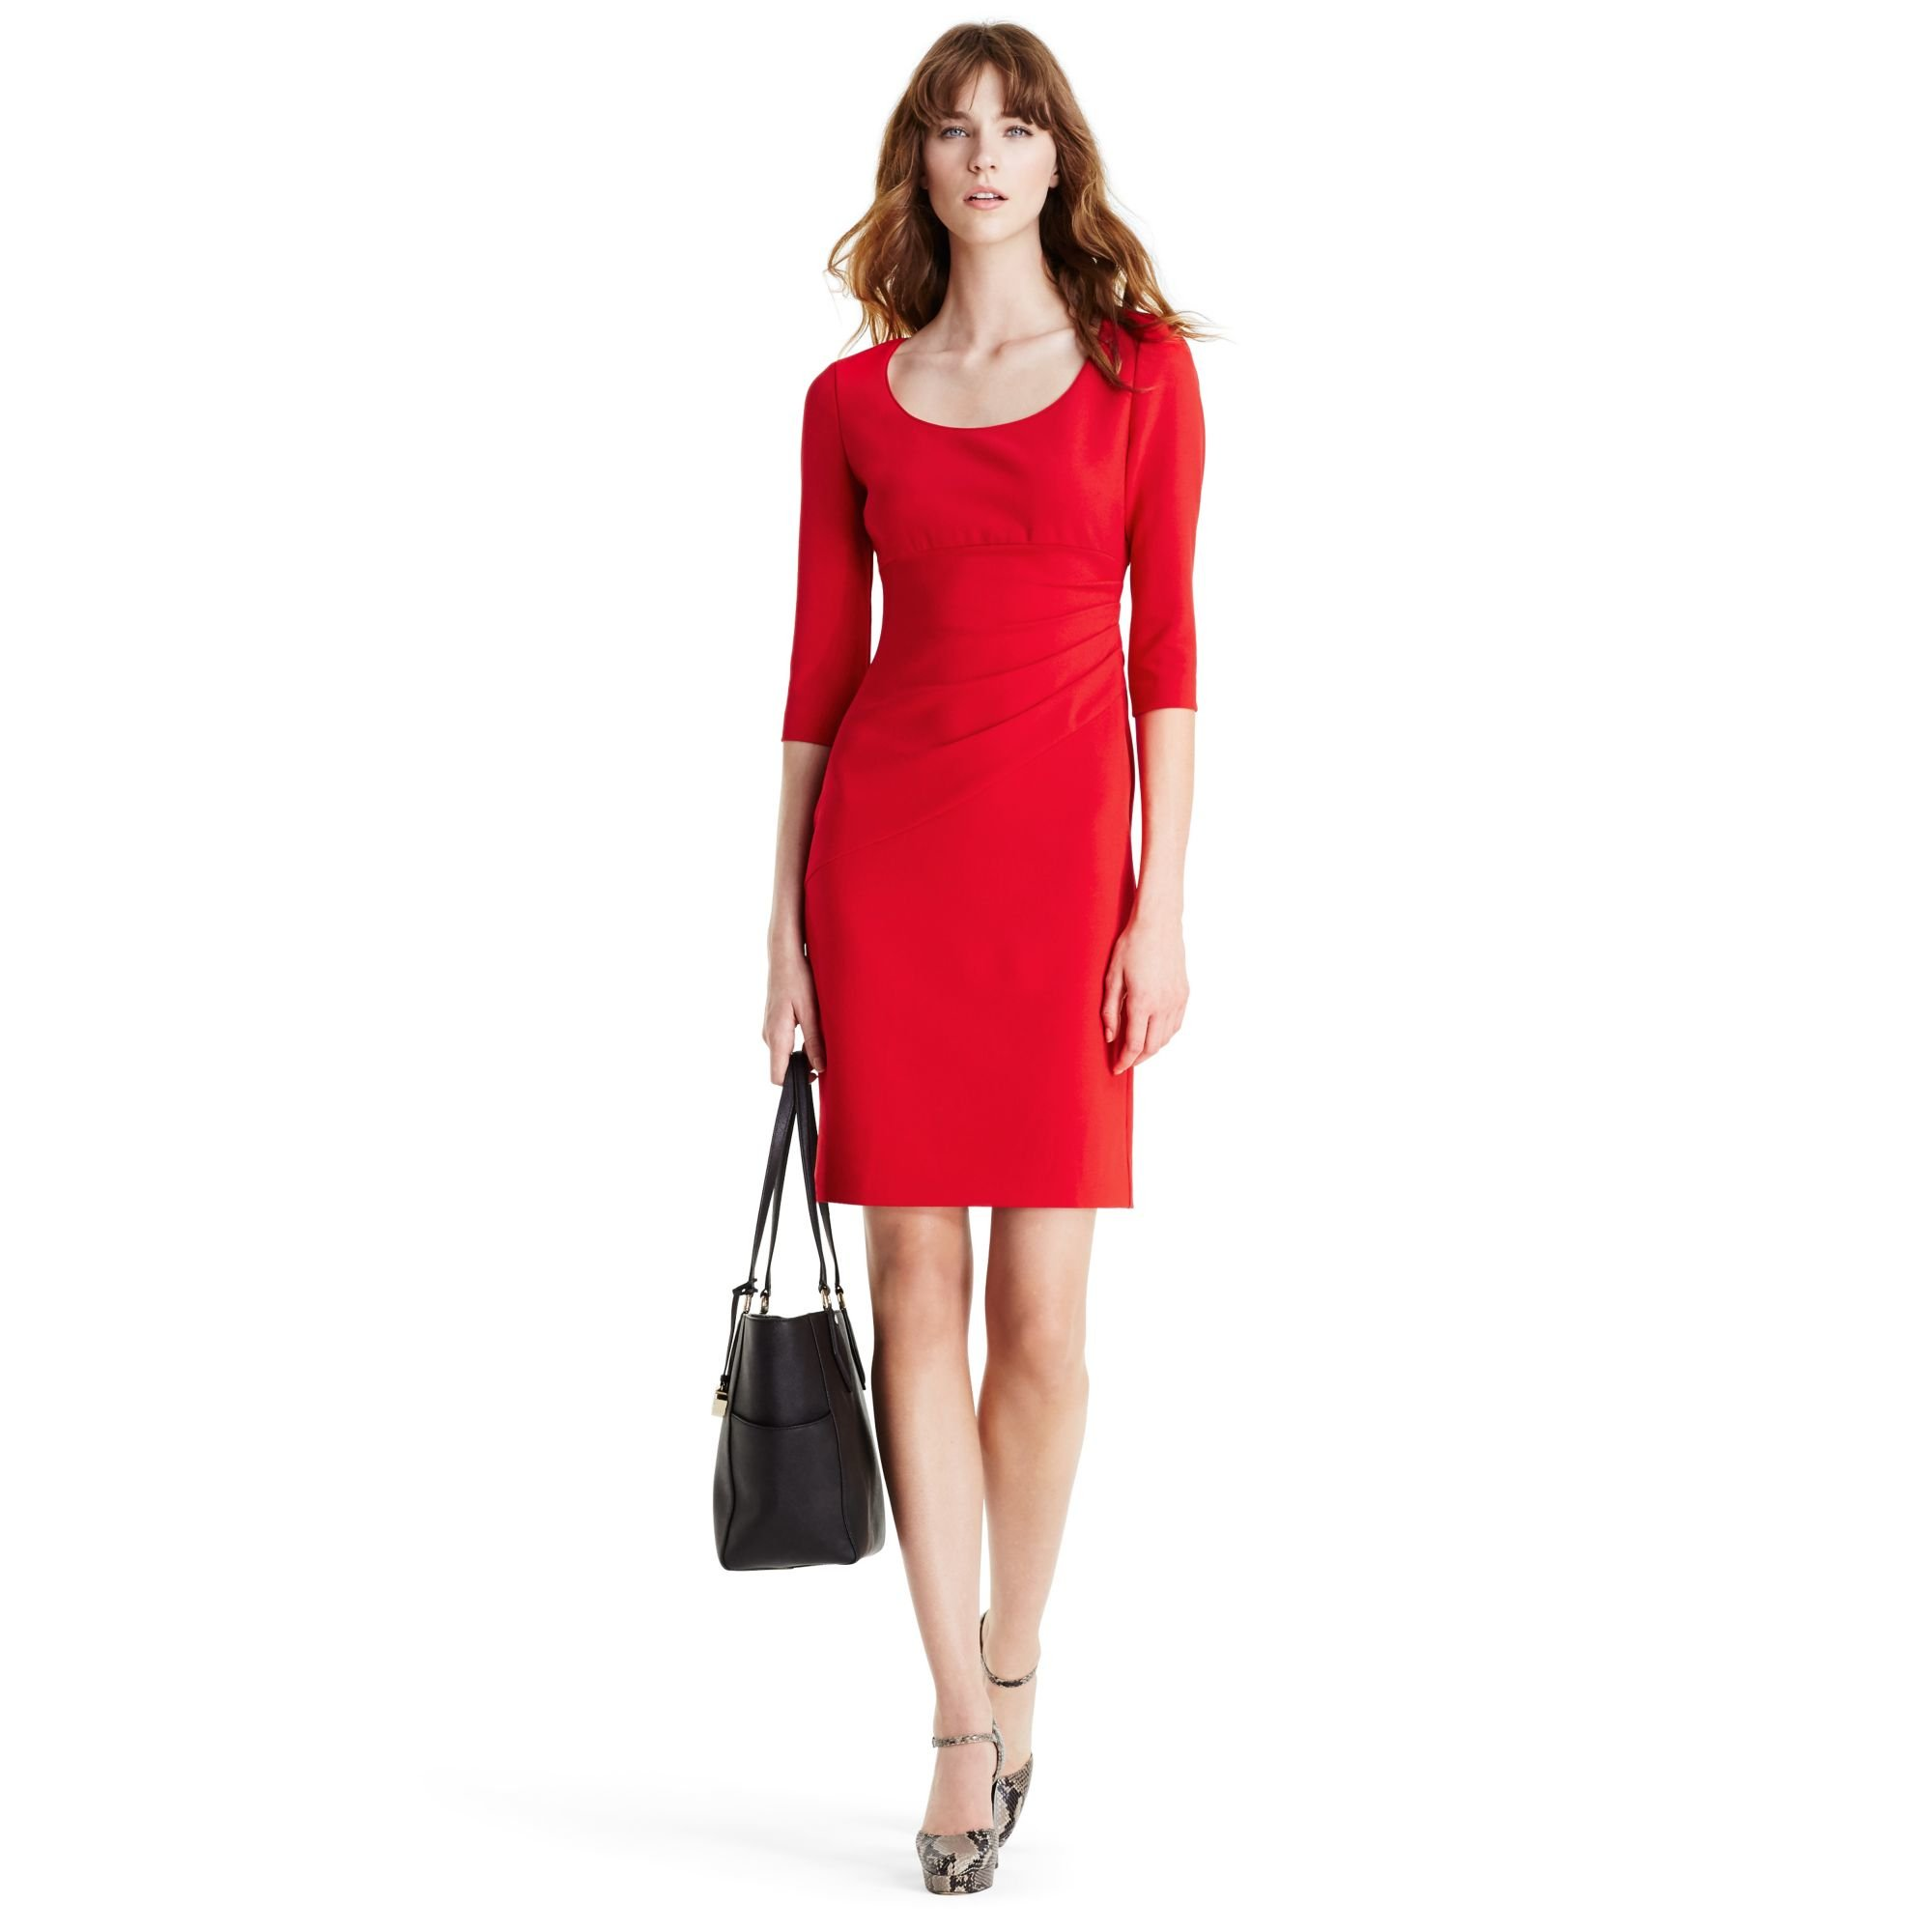 Diane von furstenberg Dvf Eliana Ceramic Sheath Dress in Red | Lyst